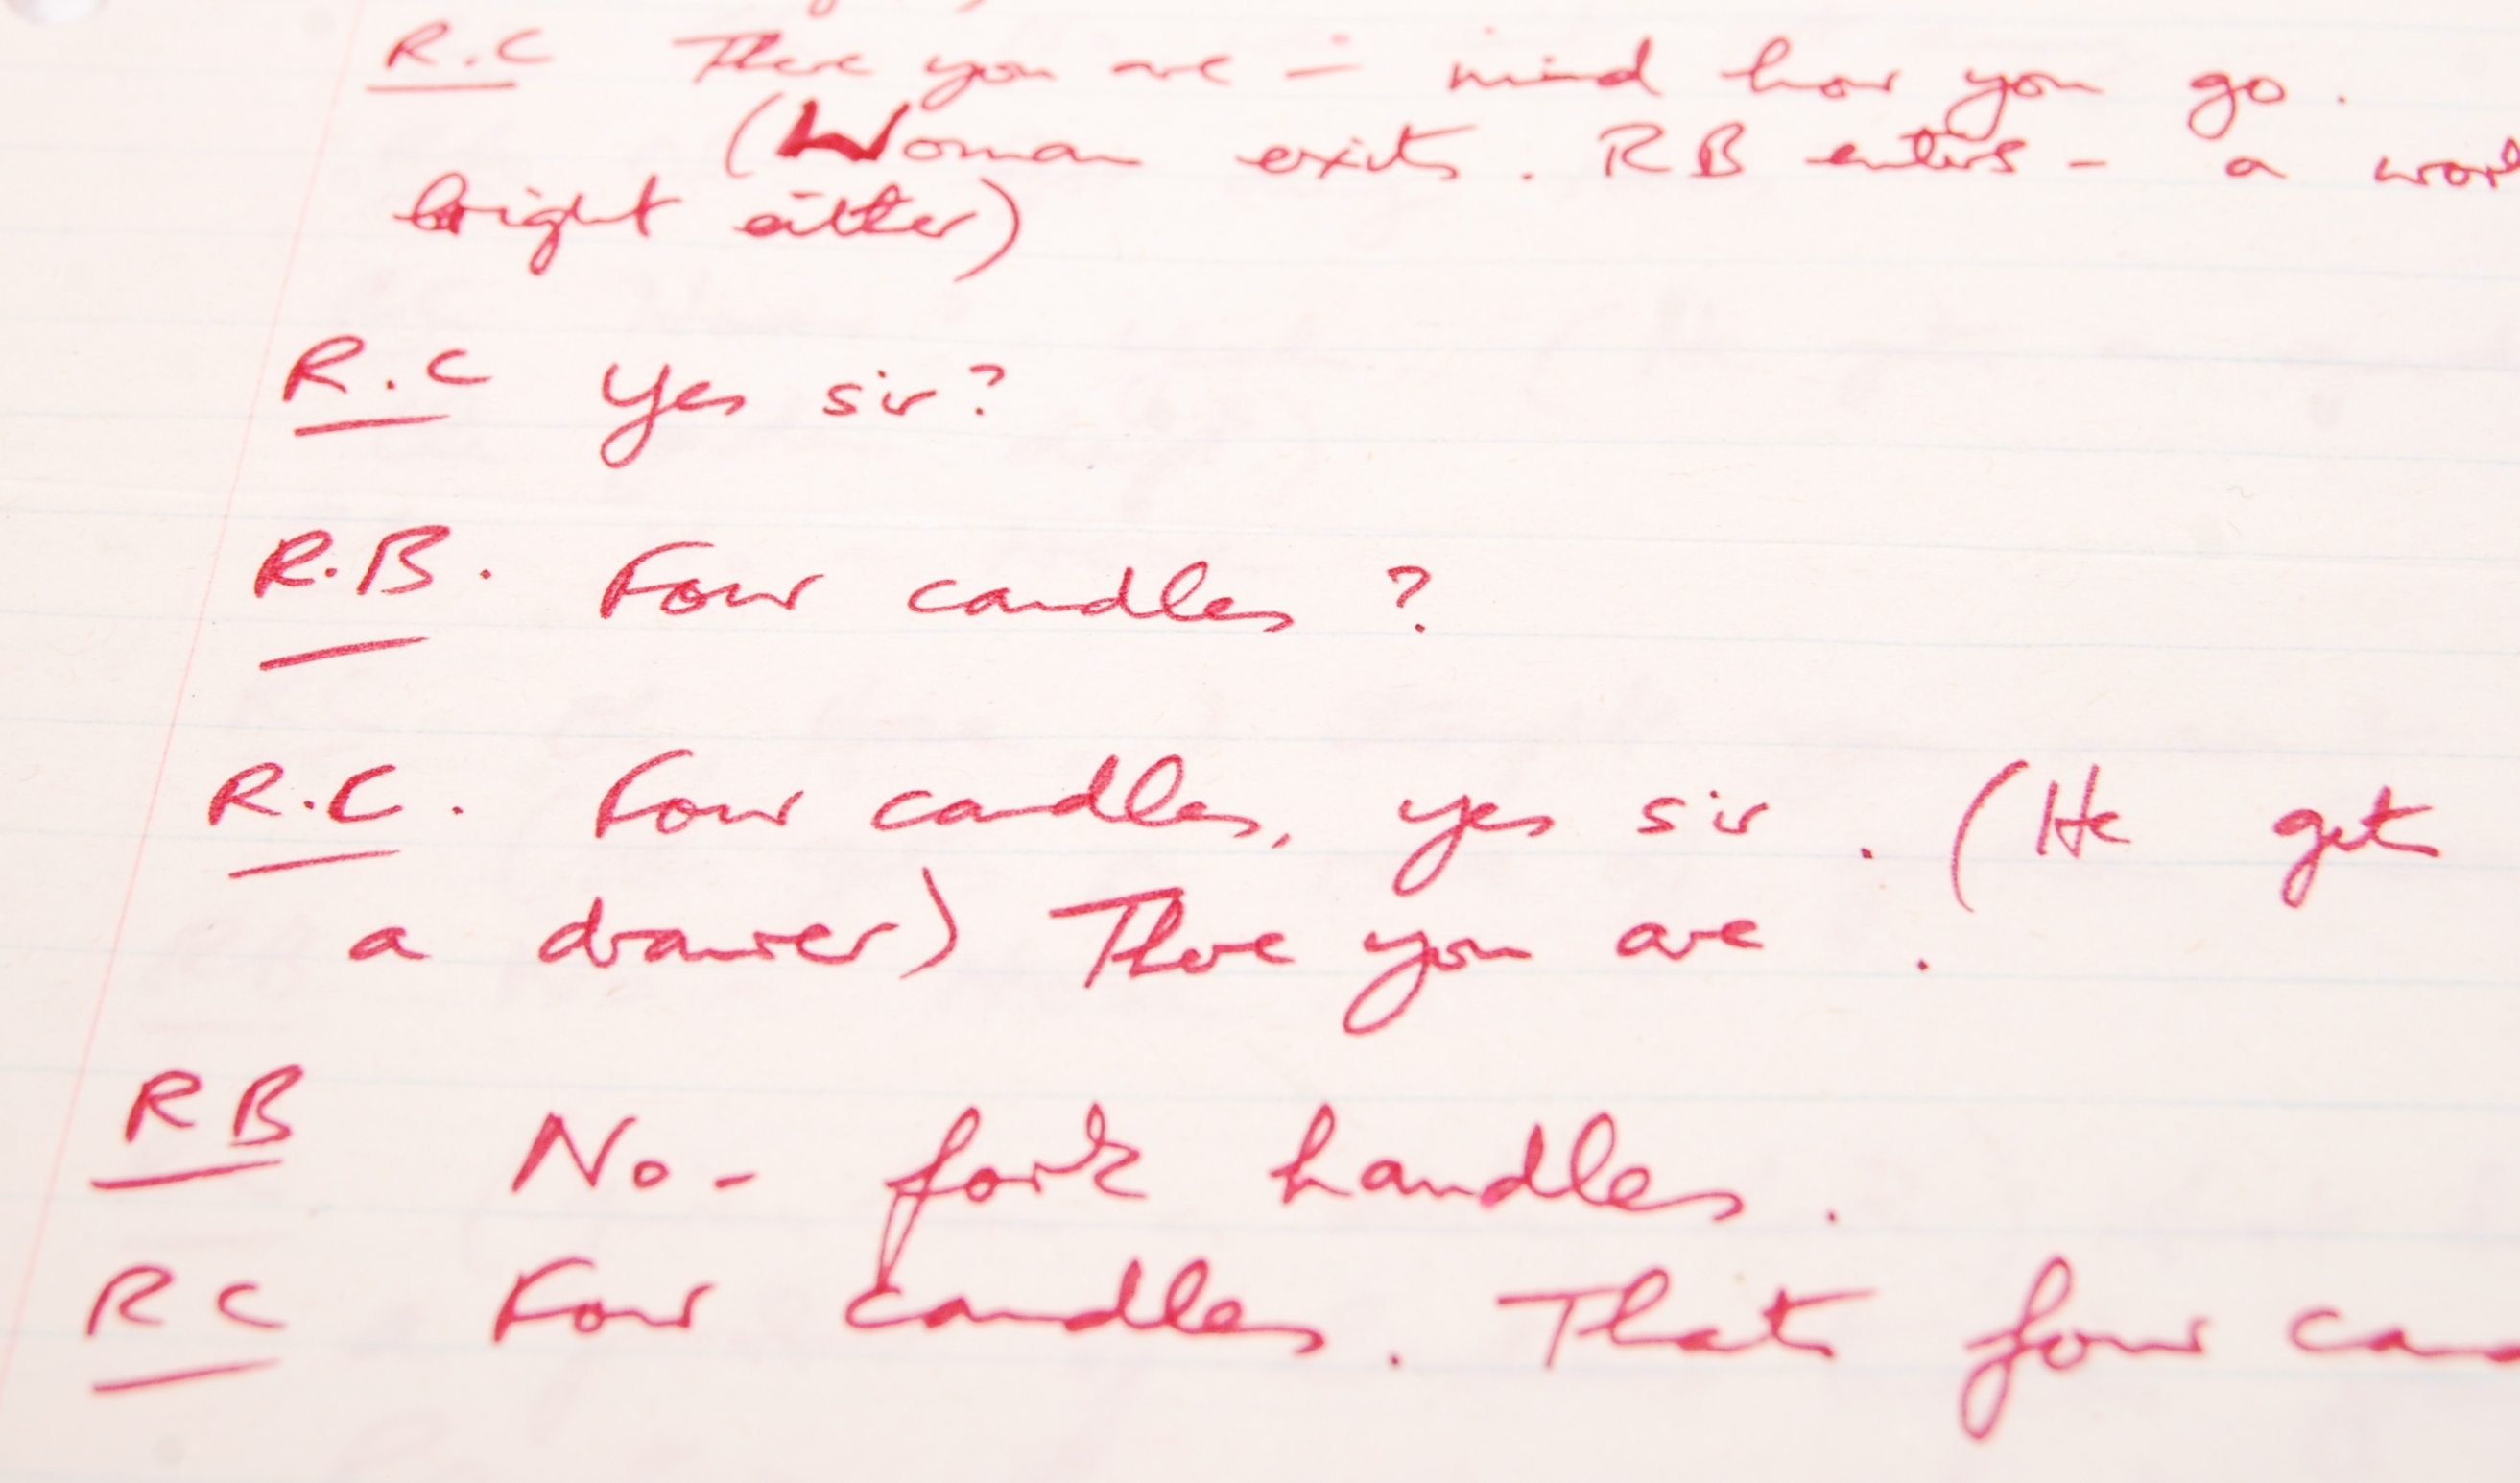 Lot 255 - RONNIE BARKER'S HANDWRITTEN TWO RONNIES ' ANNIE FINKHOUSE ' FORK HANDLES SCRIPT